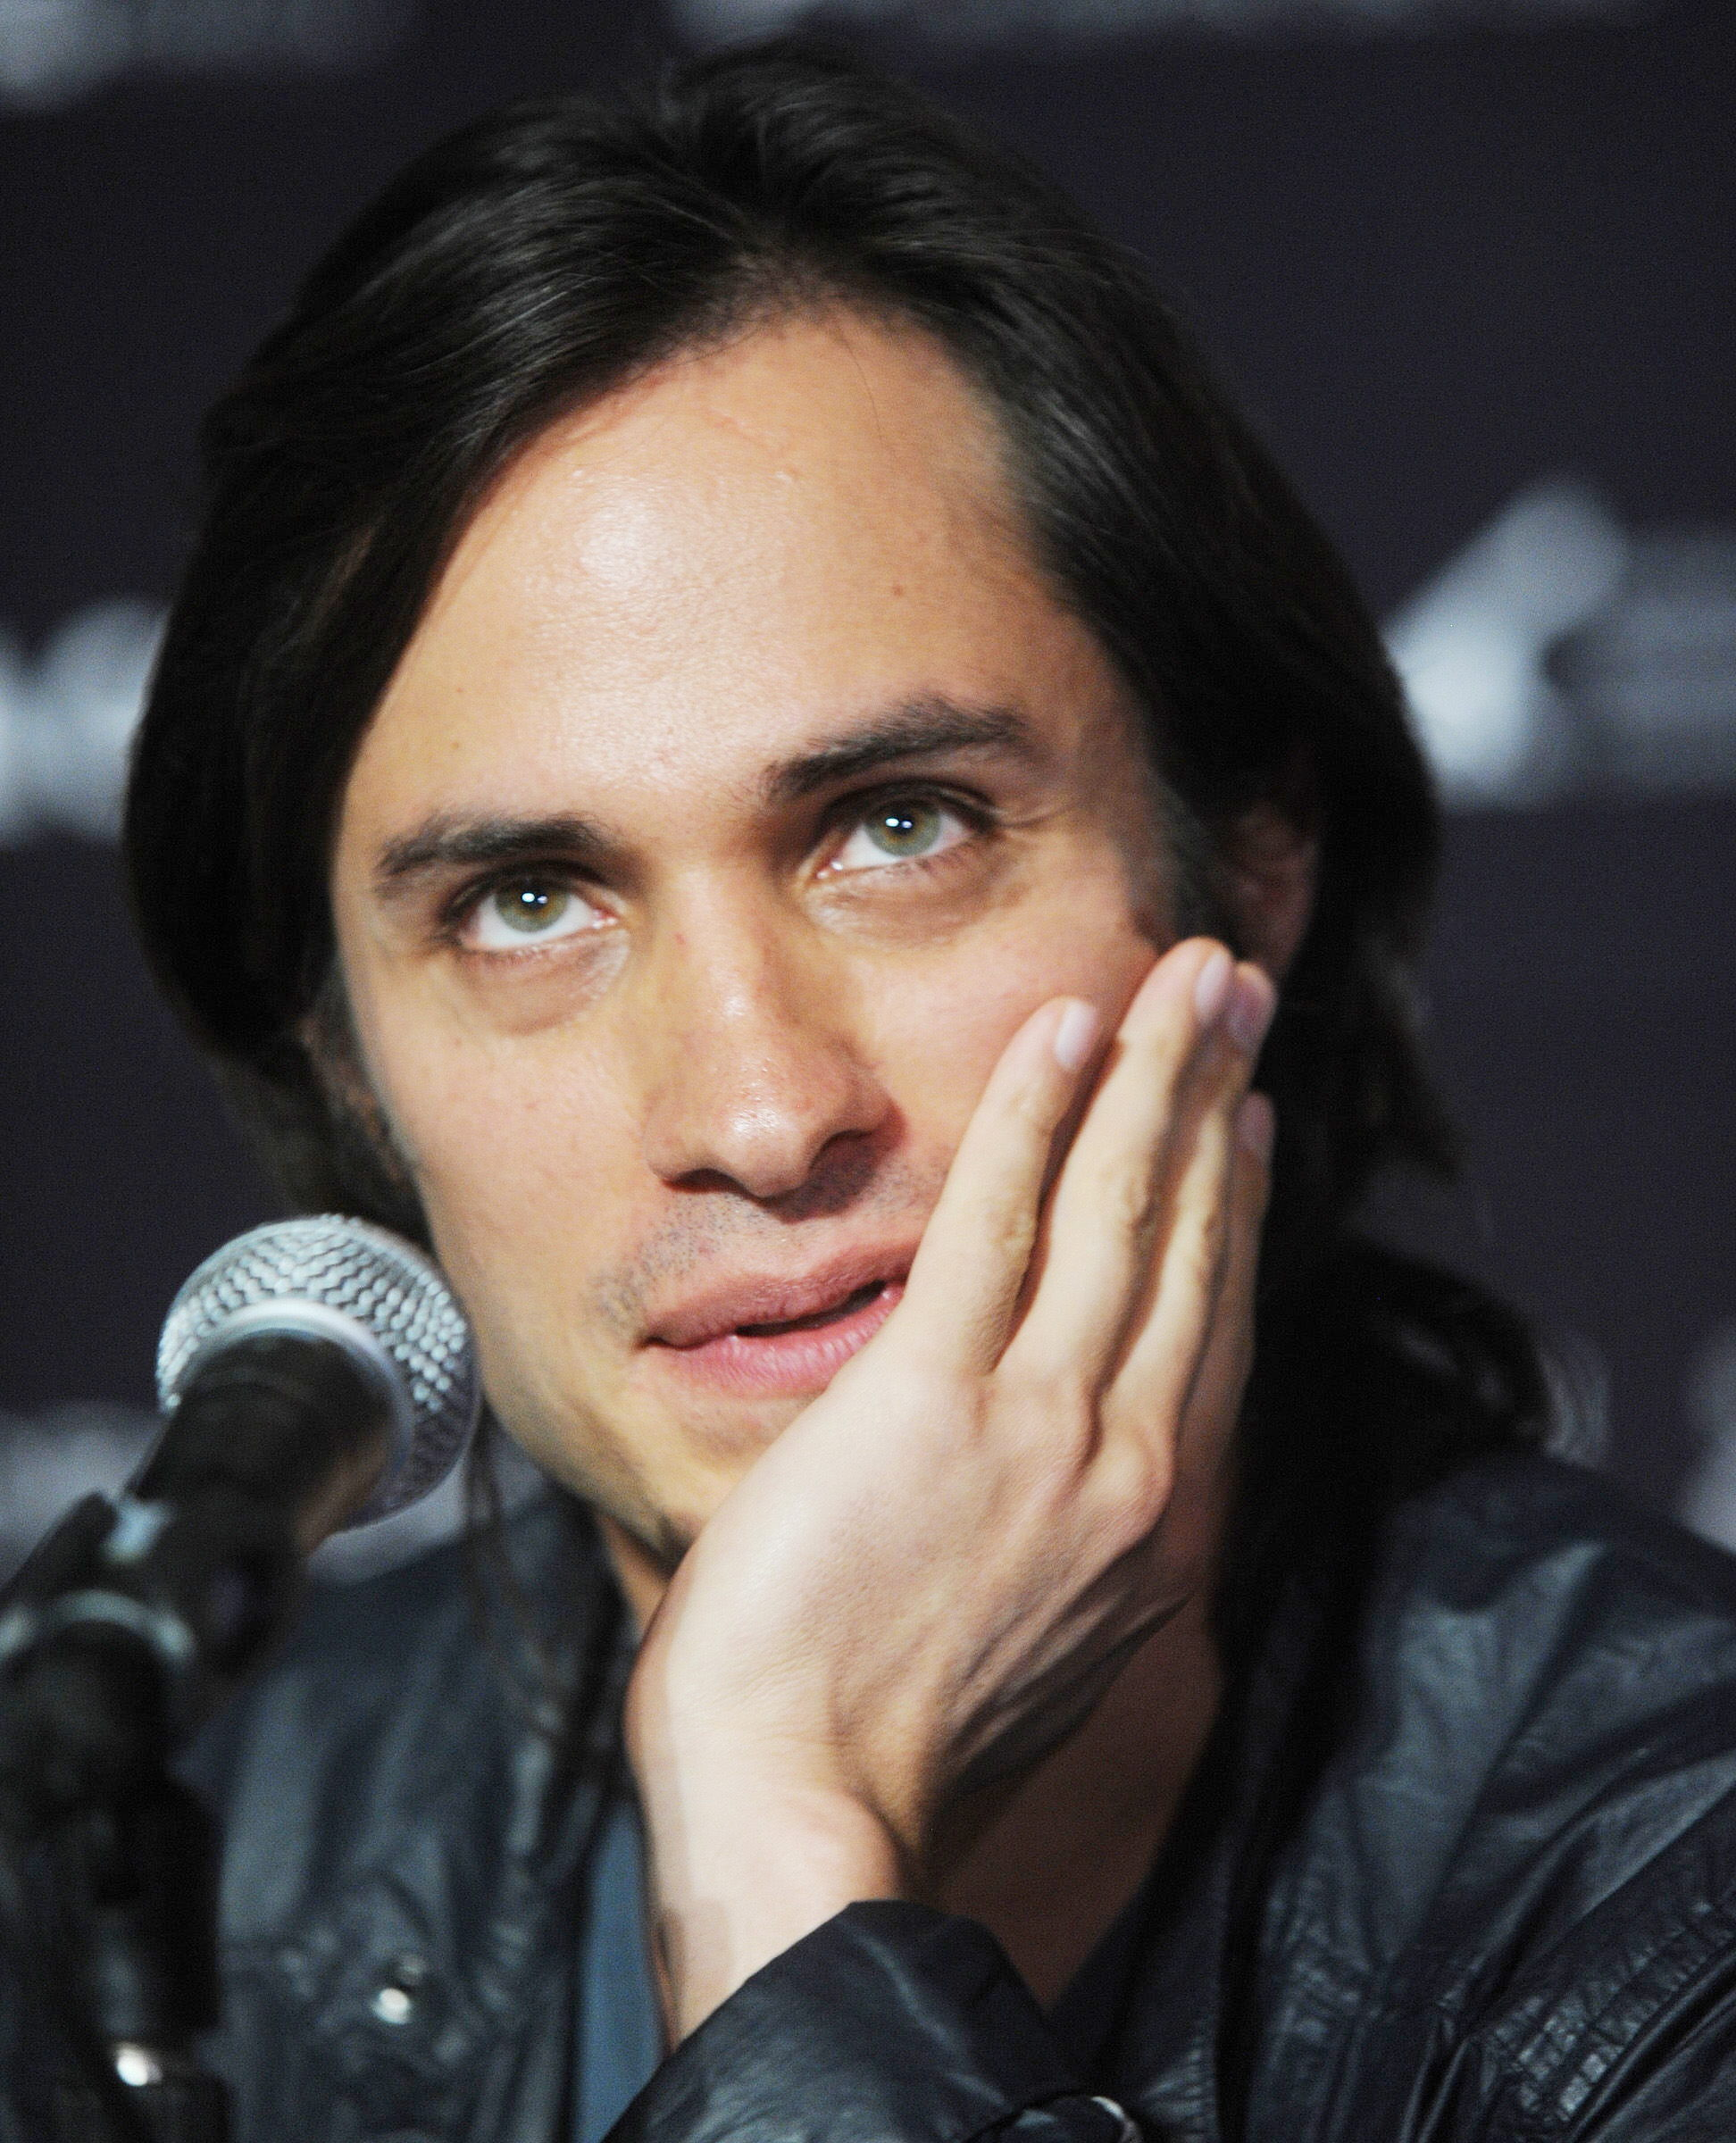 Gael Garcia Bernal Filmes intended for gael garcia bernal on mexico's plan for documentary films | indiewire